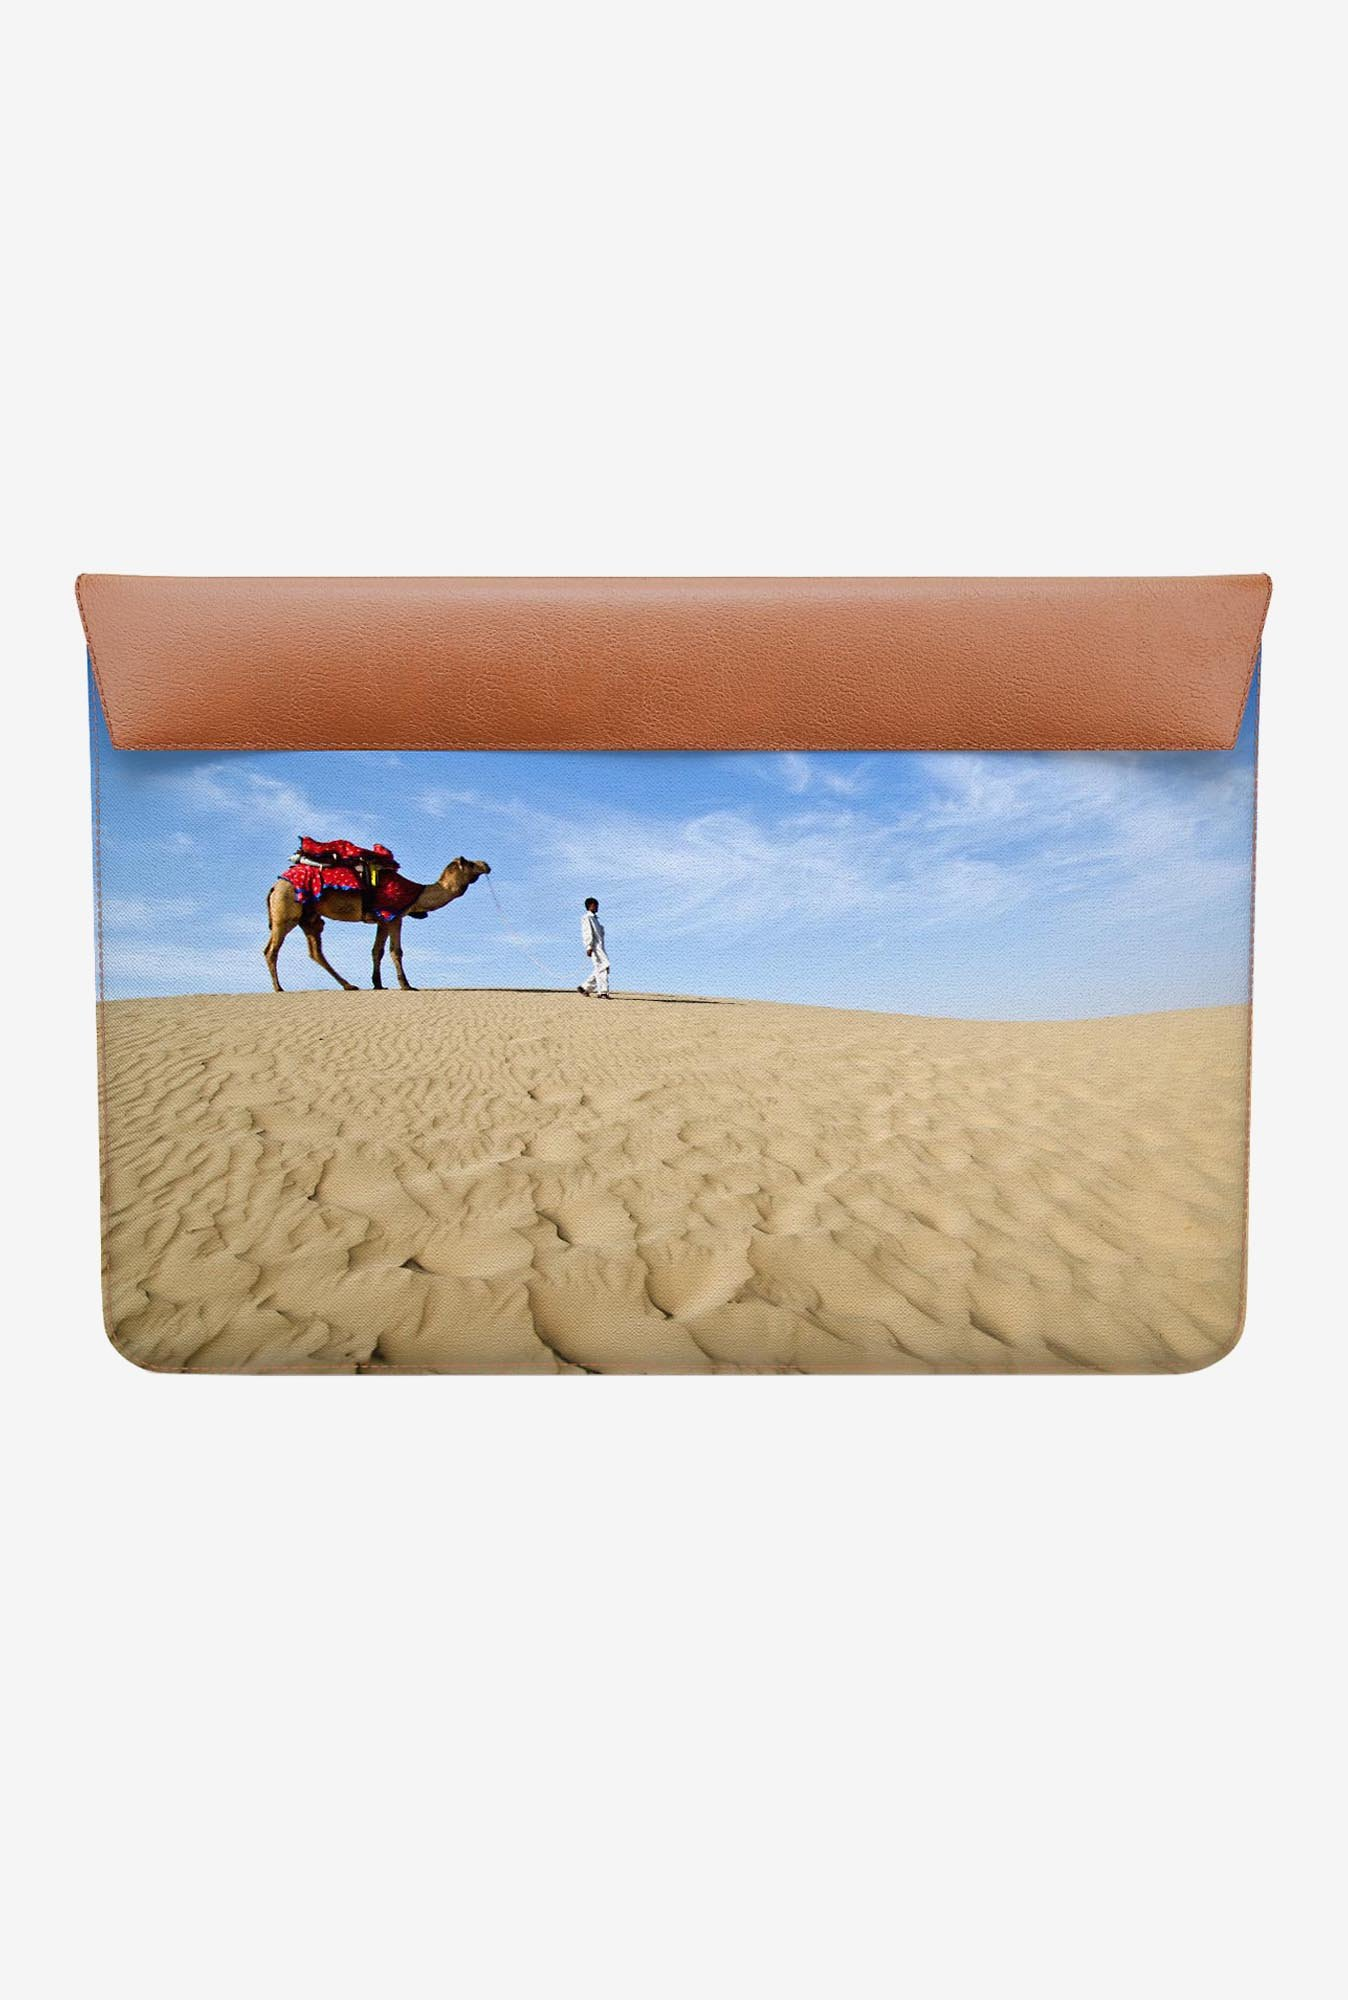 DailyObjects Lead A Camel MacBook Pro 15 Envelope Sleeve